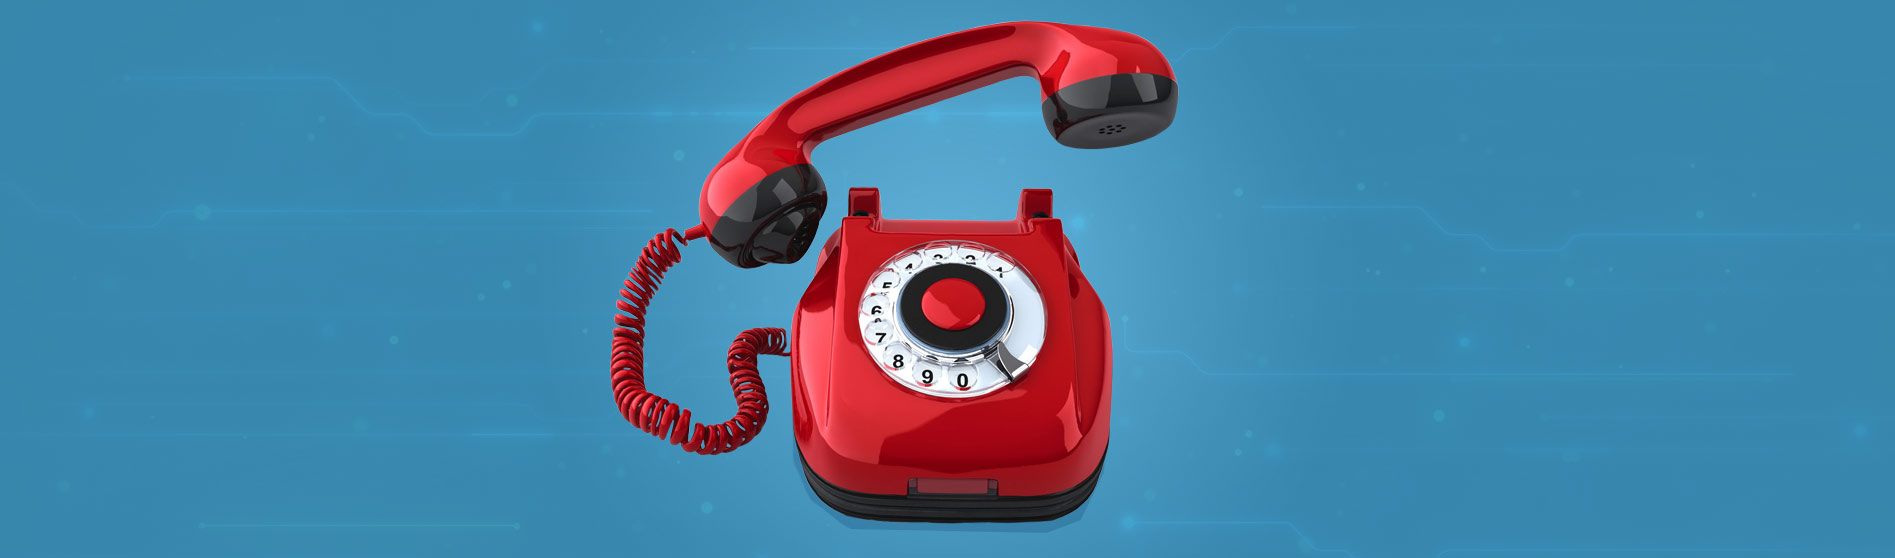 The humble landline phone can continue to evolve